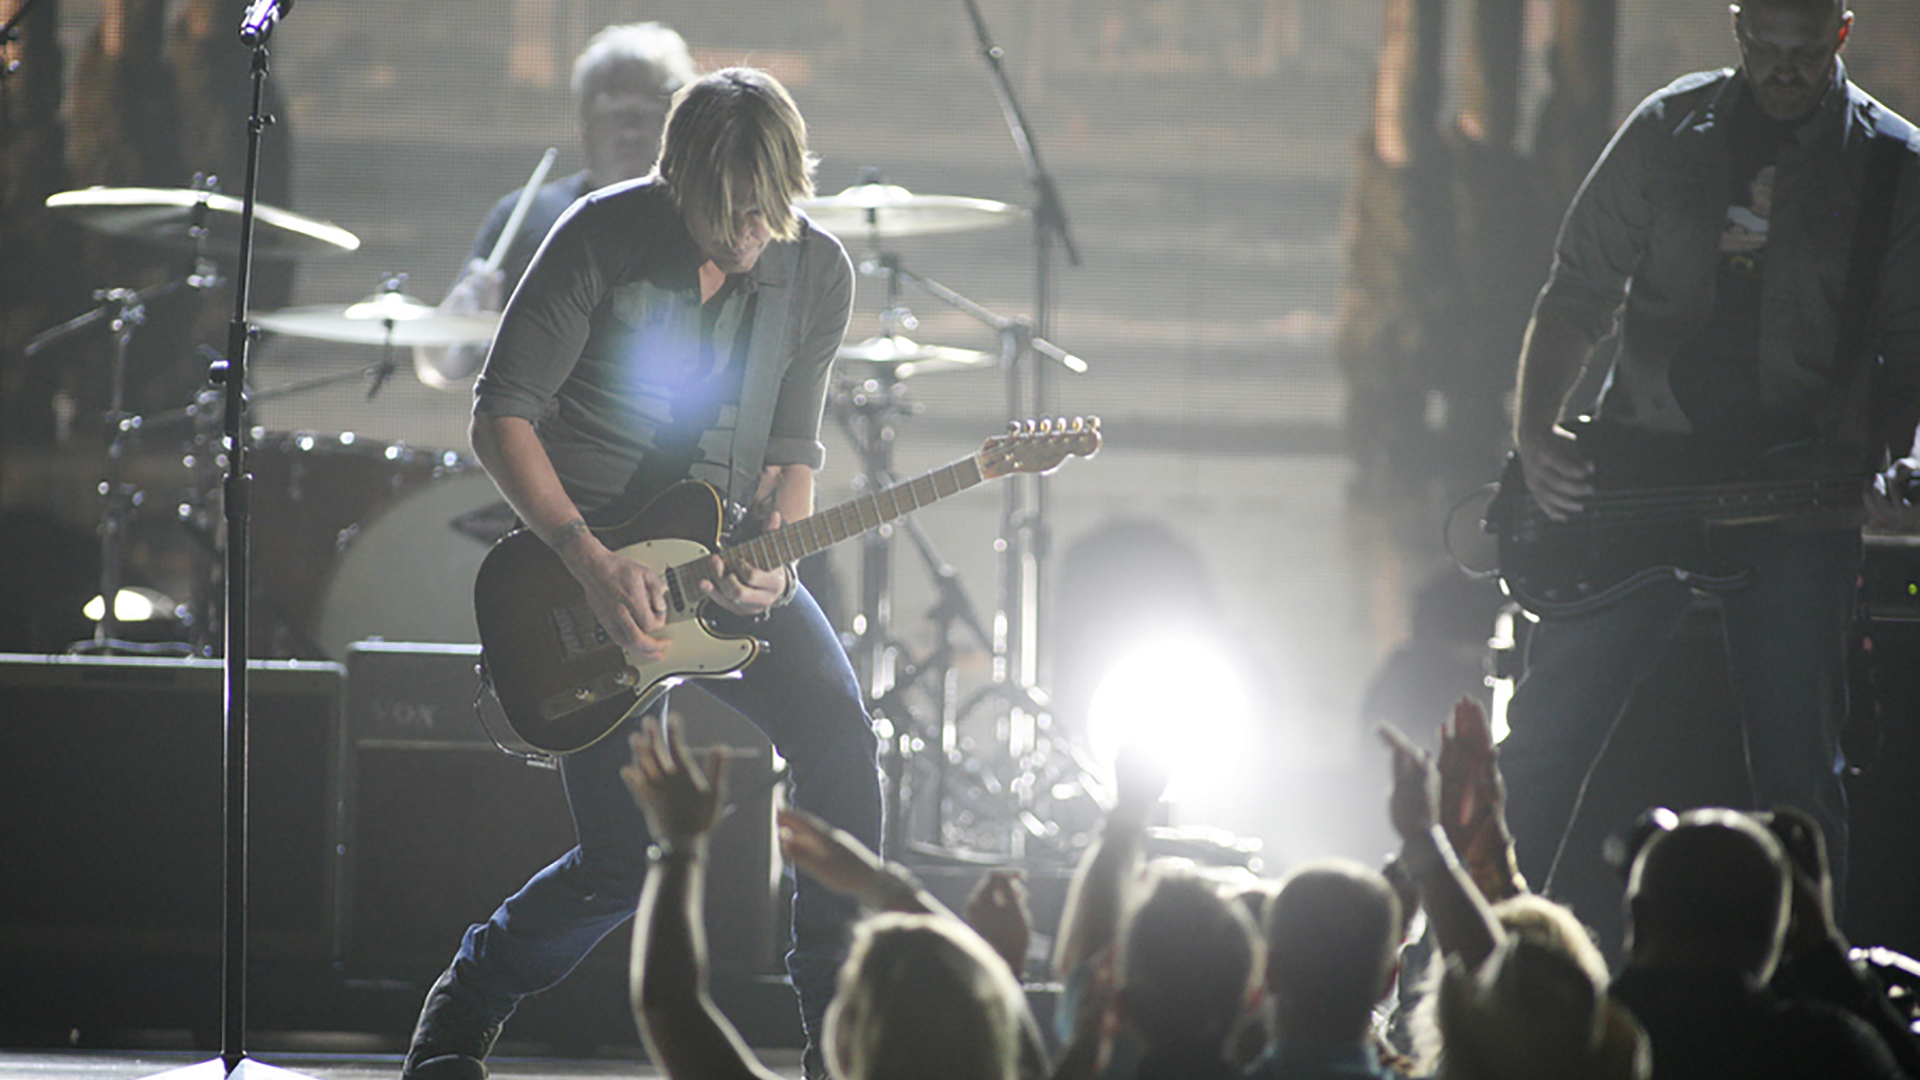 29. Keith Urban performs